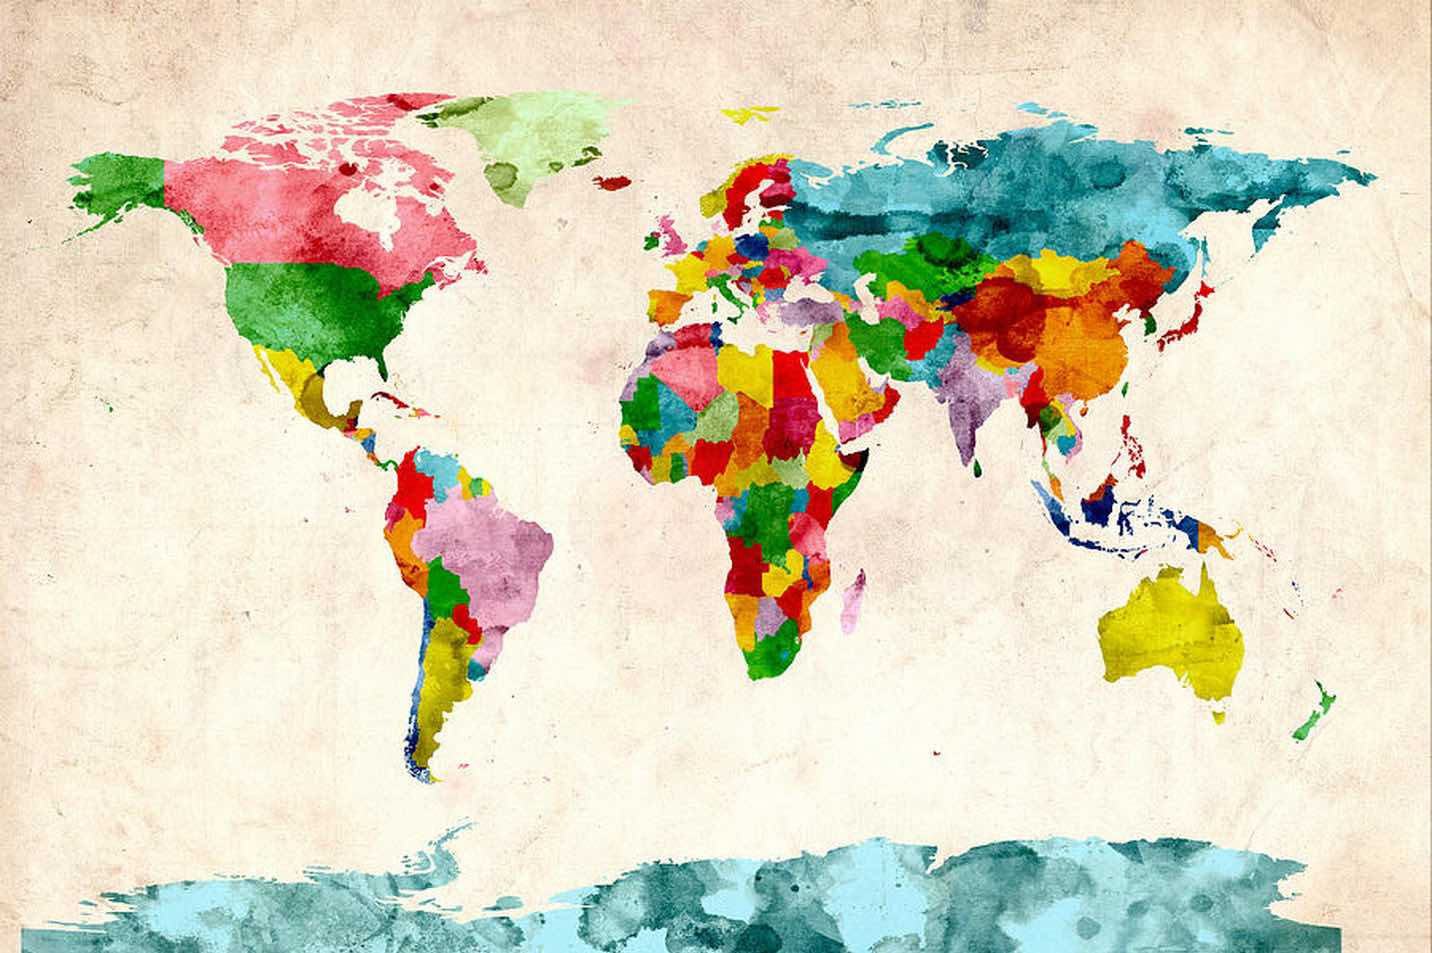 World Map Wallpapers Artsy Wallpapers Pictures Free Download: Global Outreach